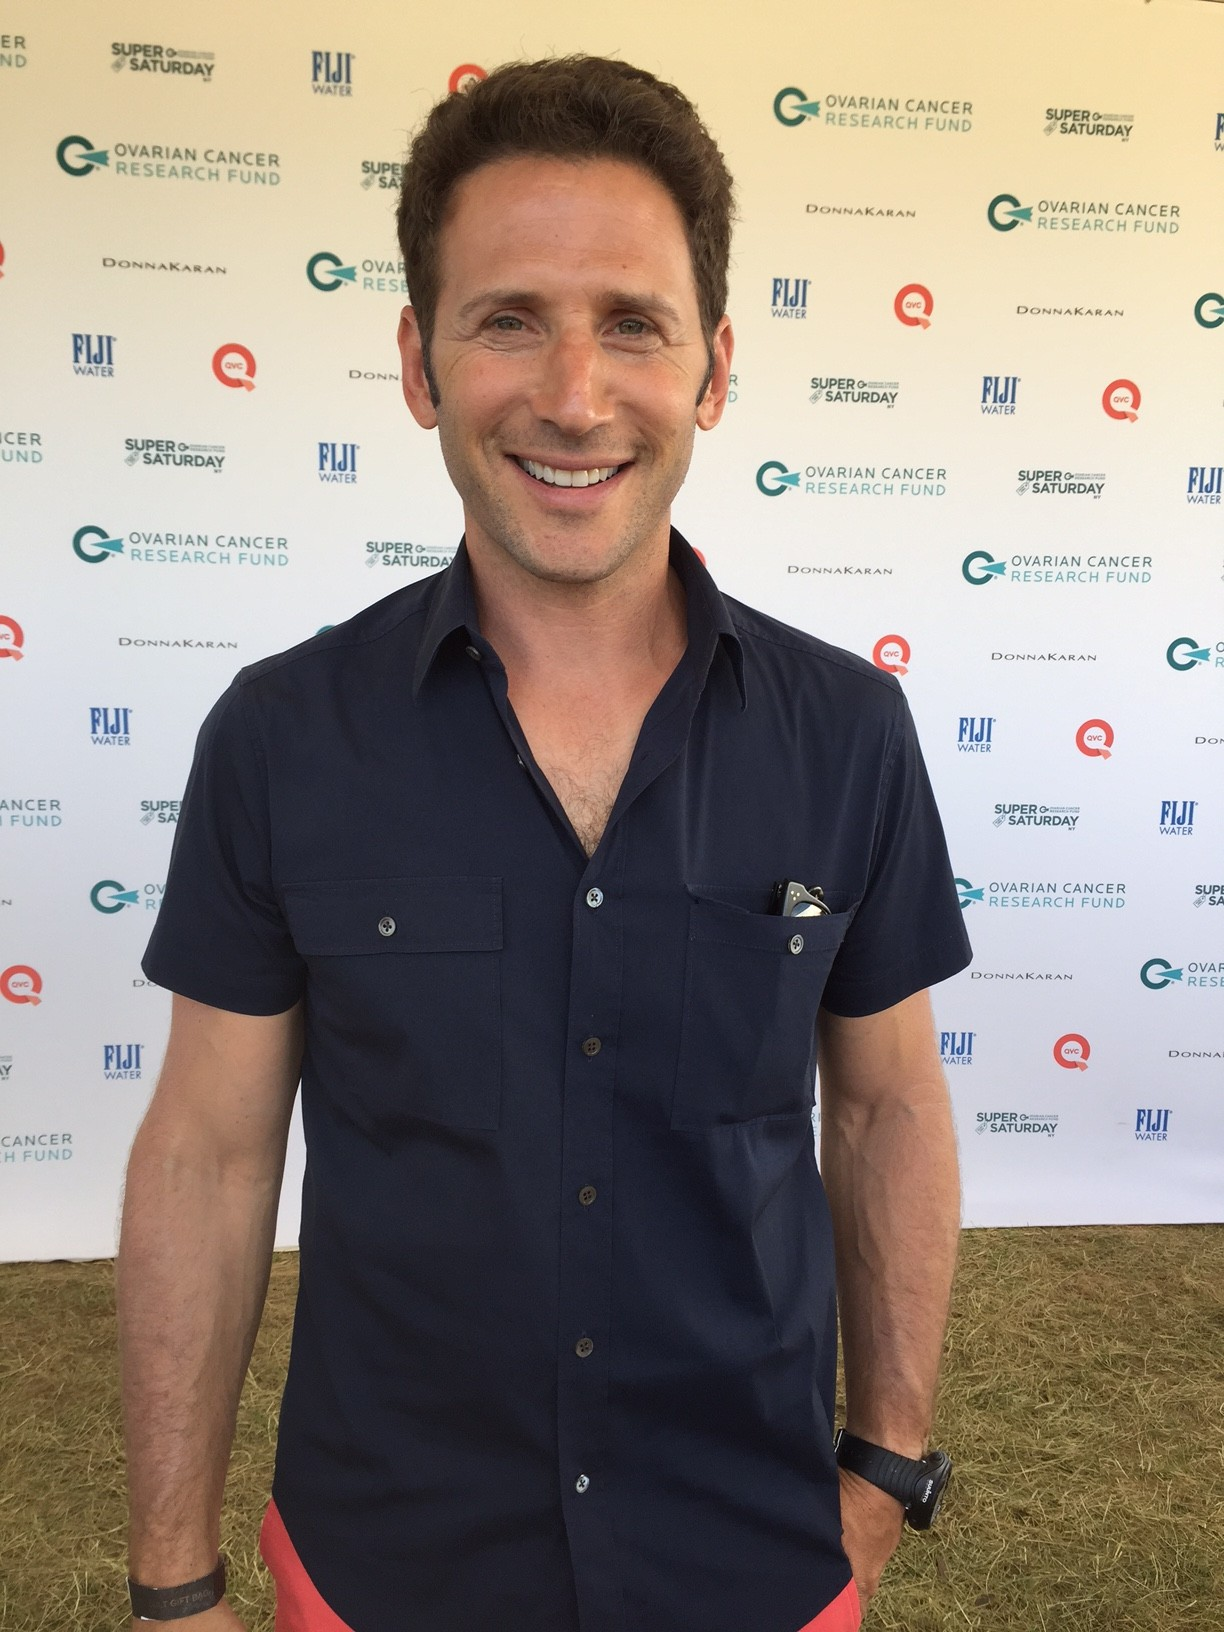 mark feuerstein wikimark feuerstein wiki, mark feuerstein instagram, mark feuerstein, mark feuerstein wife, mark feuerstein net worth, mark feuerstein dana klein, mark feuerstein cancer, mark feuerstein plastic surgery, mark feuerstein movies and tv shows, mark feuerstein shirtless, mark feuerstein imdb, mark feuerstein family, mark feuerstein gay, mark feuerstein sex and the city, mark feuerstein wife dana klein, mark feuerstein twitter, mark feuerstein boeing, mark feuerstein west wing, mark feuerstein brother, mark feuerstein daughter